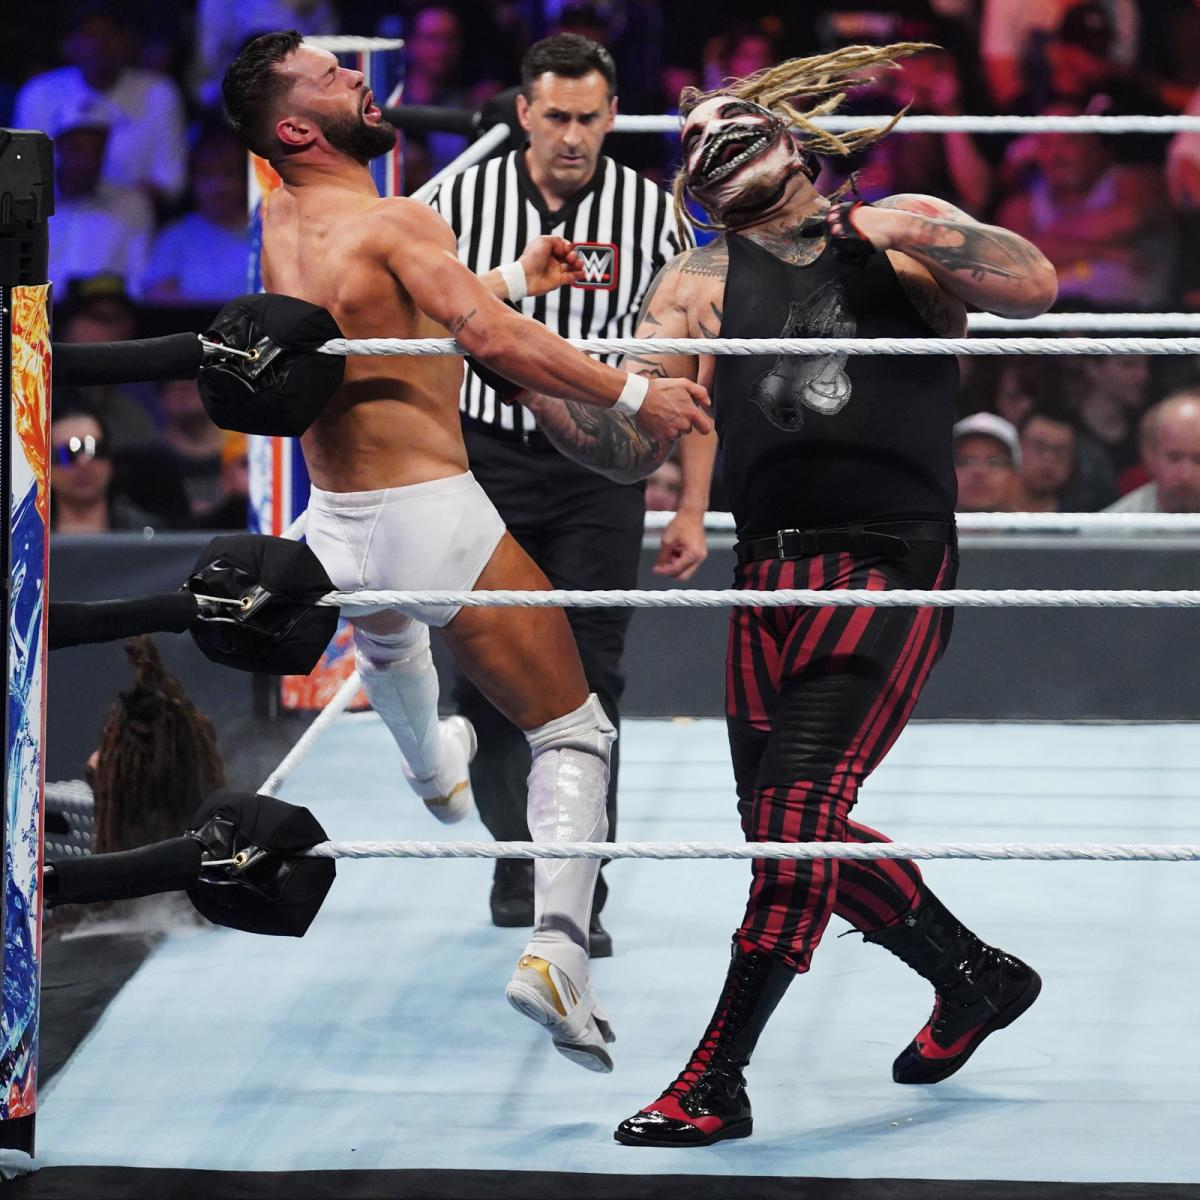 SummerSlam 2019 ~ Bray Wyatt vs Finn Balor